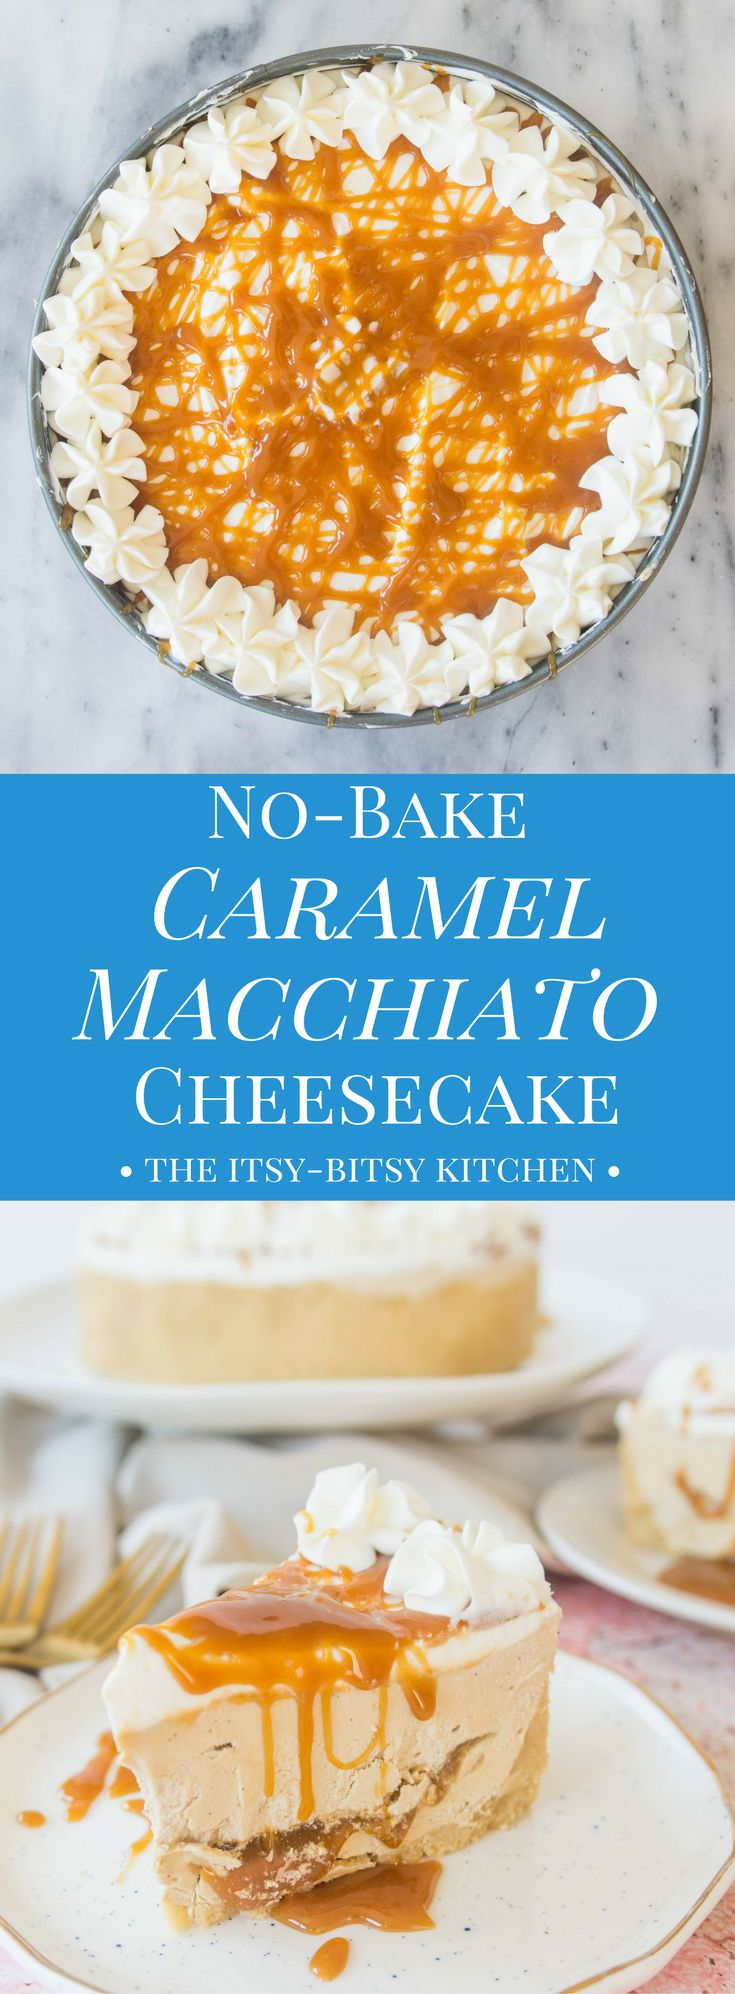 Creamy and lightly flavored with coffee, spiked with vanilla bean, and filled with caramel sauce, this caramel macchiato cheesecake is a no-bake dessert perfect for summer.